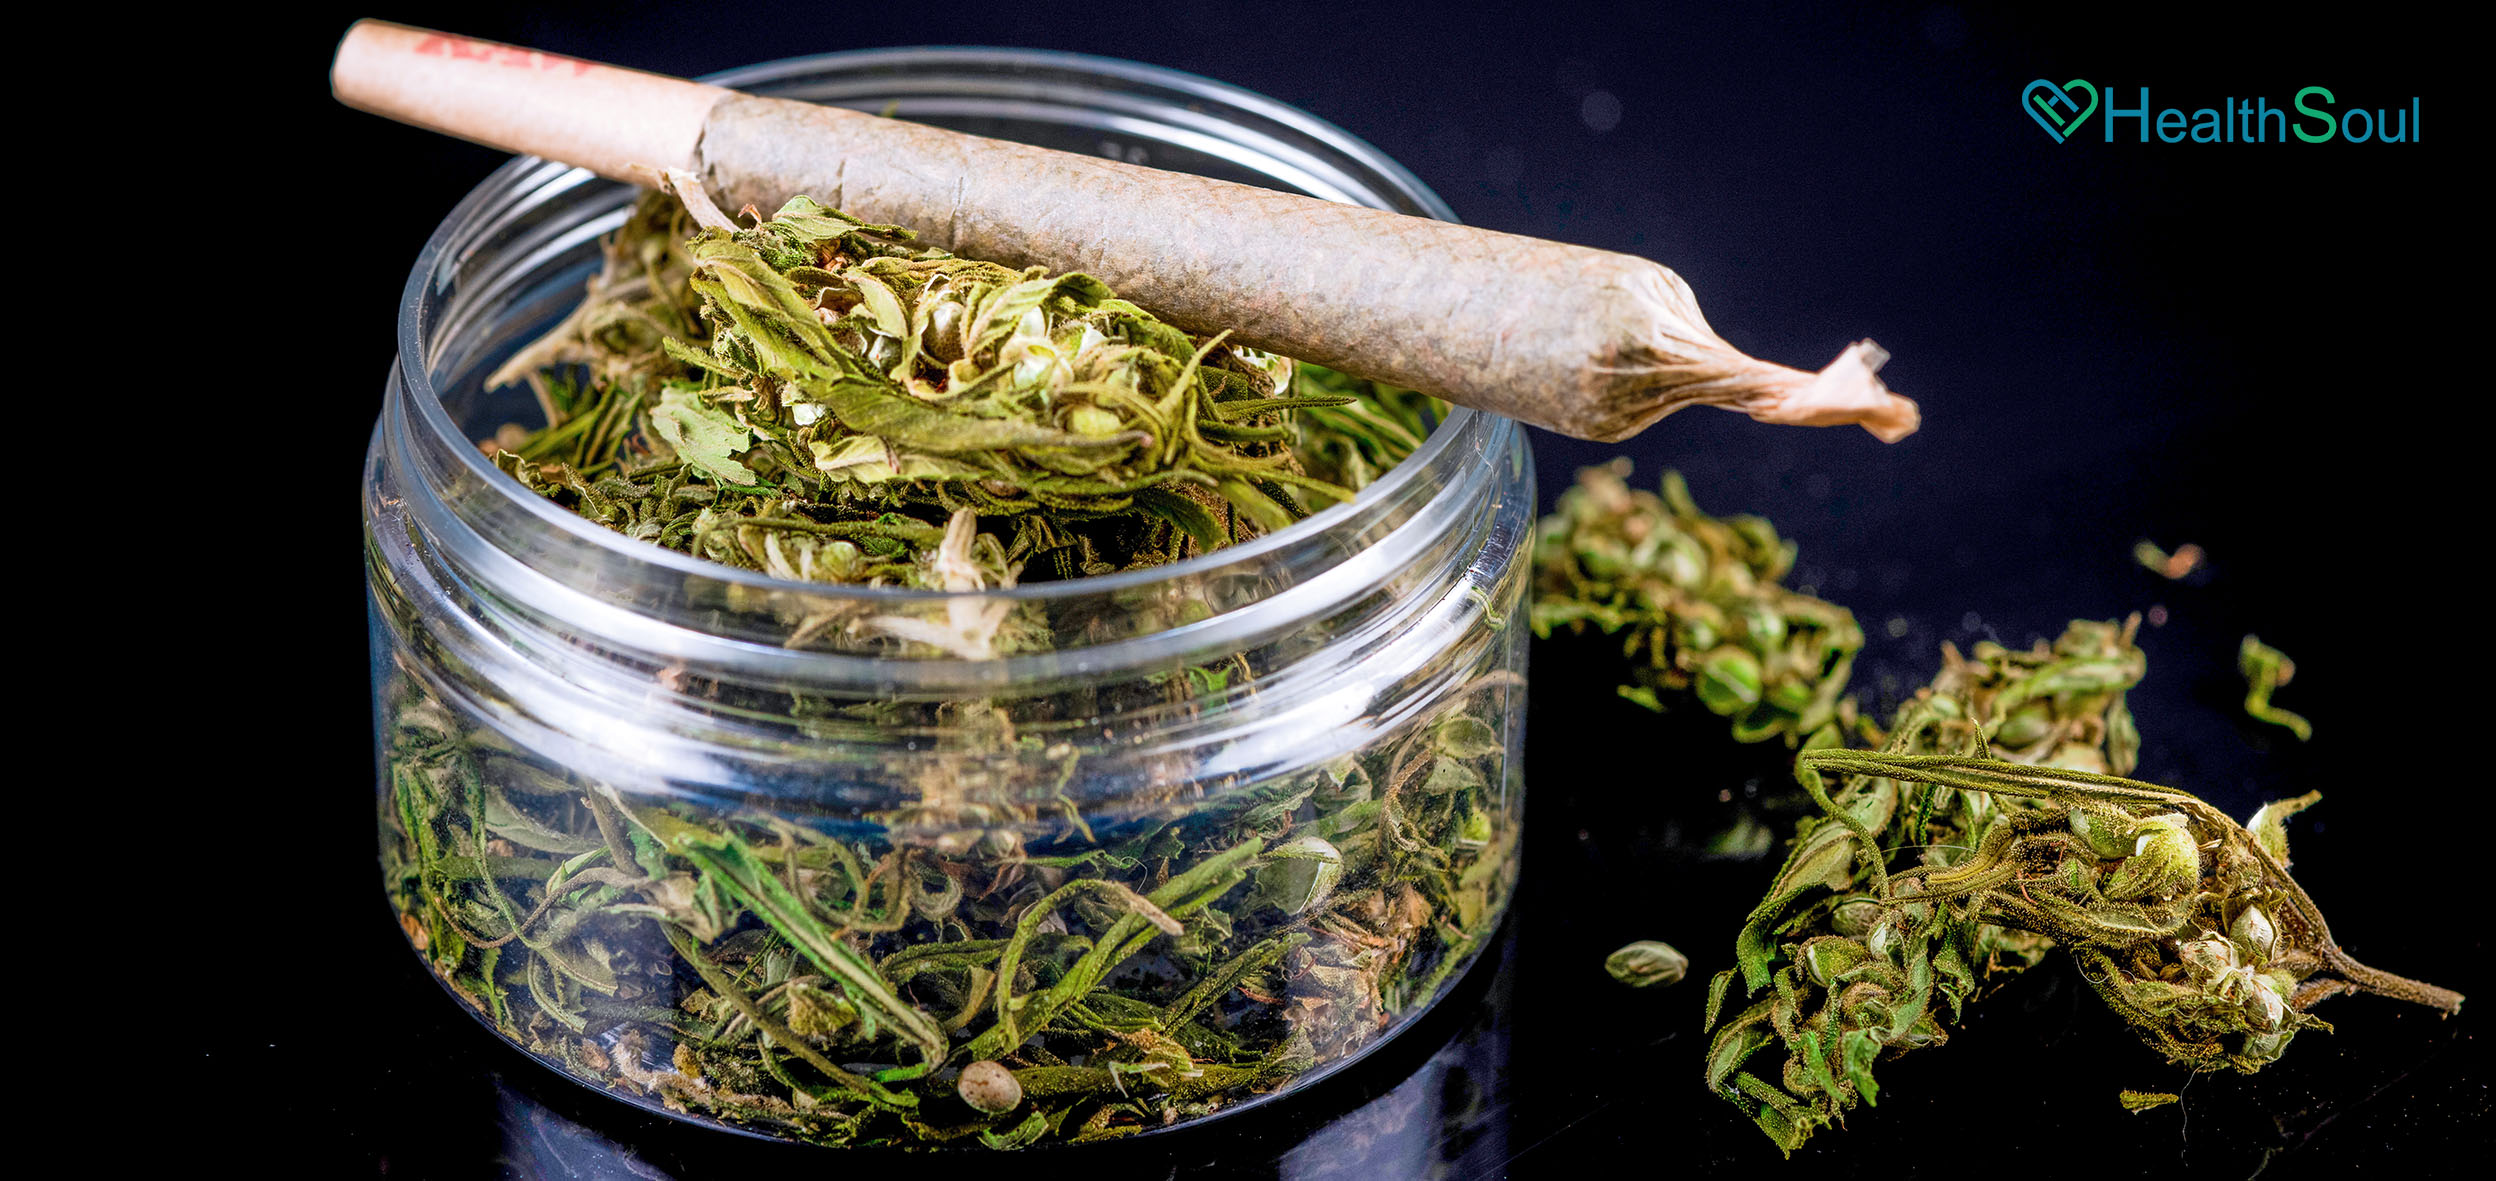 Need fast pain relief properties of purest and safest smokable hemp flower | HealthSoul